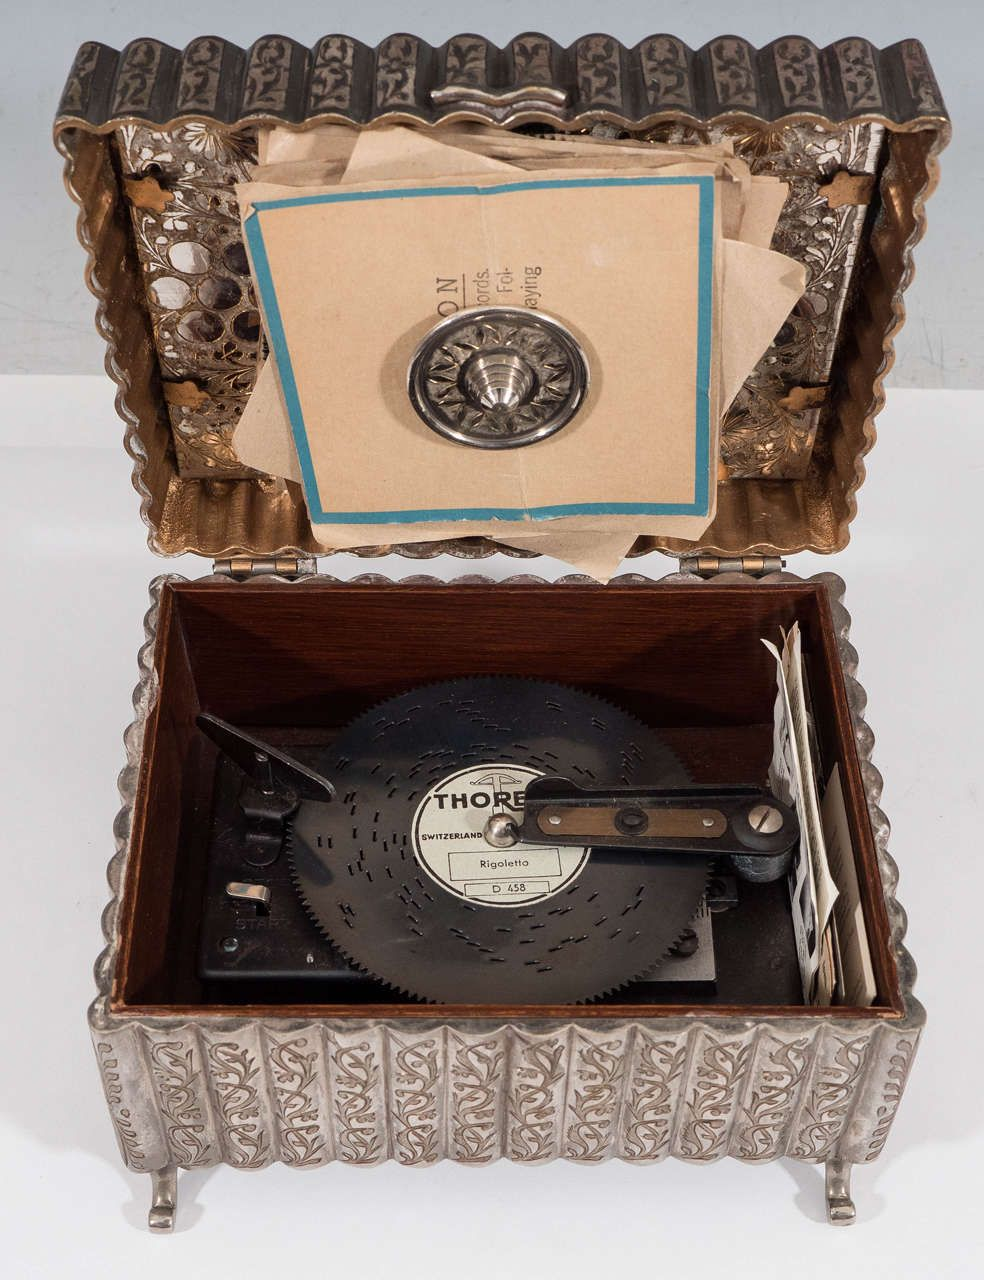 A Midcentury Silverplate Thorens Music Box By Fred Zimbalist